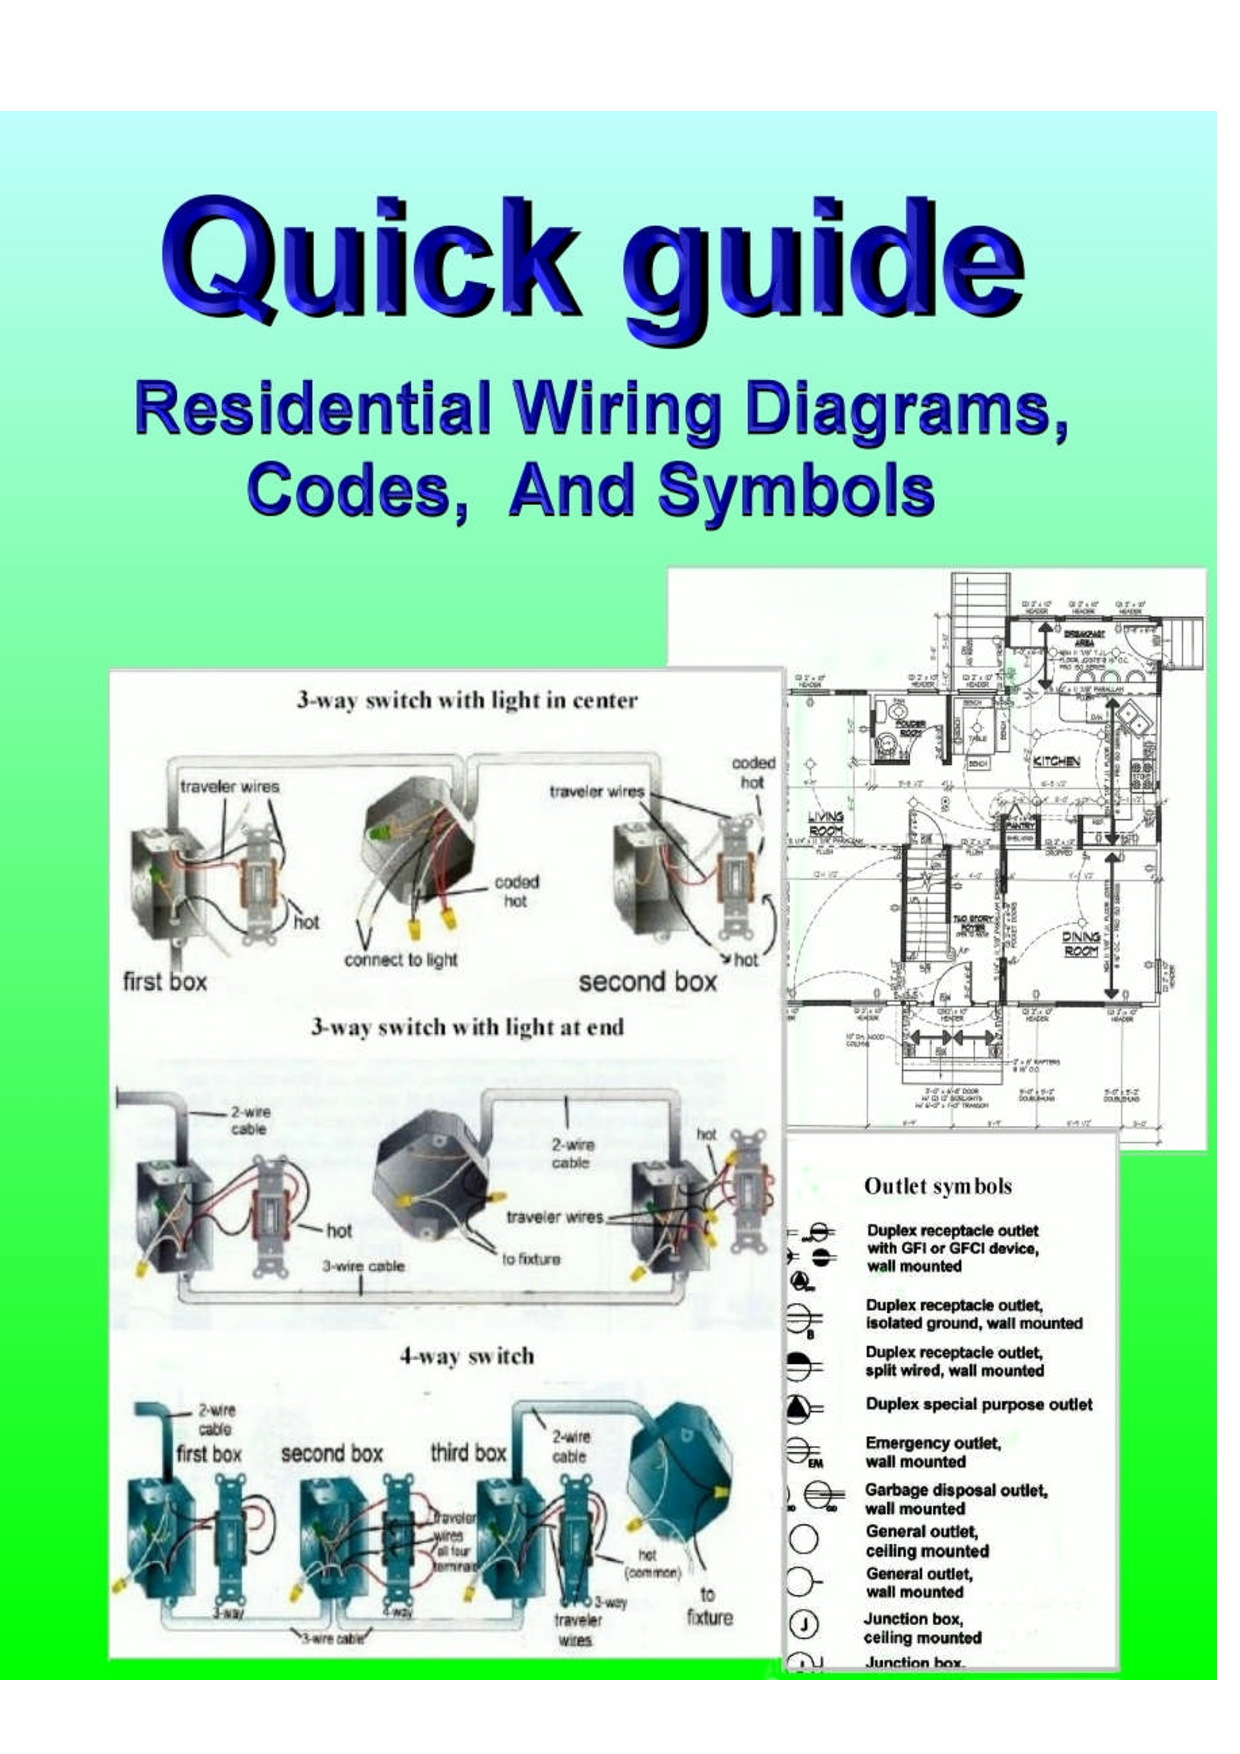 Home Electrical Wiring Diagramspdf Download Legal Documents 39 Diagrams Layouts 3 Bedroom House Diagram Pages With Many And Illustrations A Step By Guide